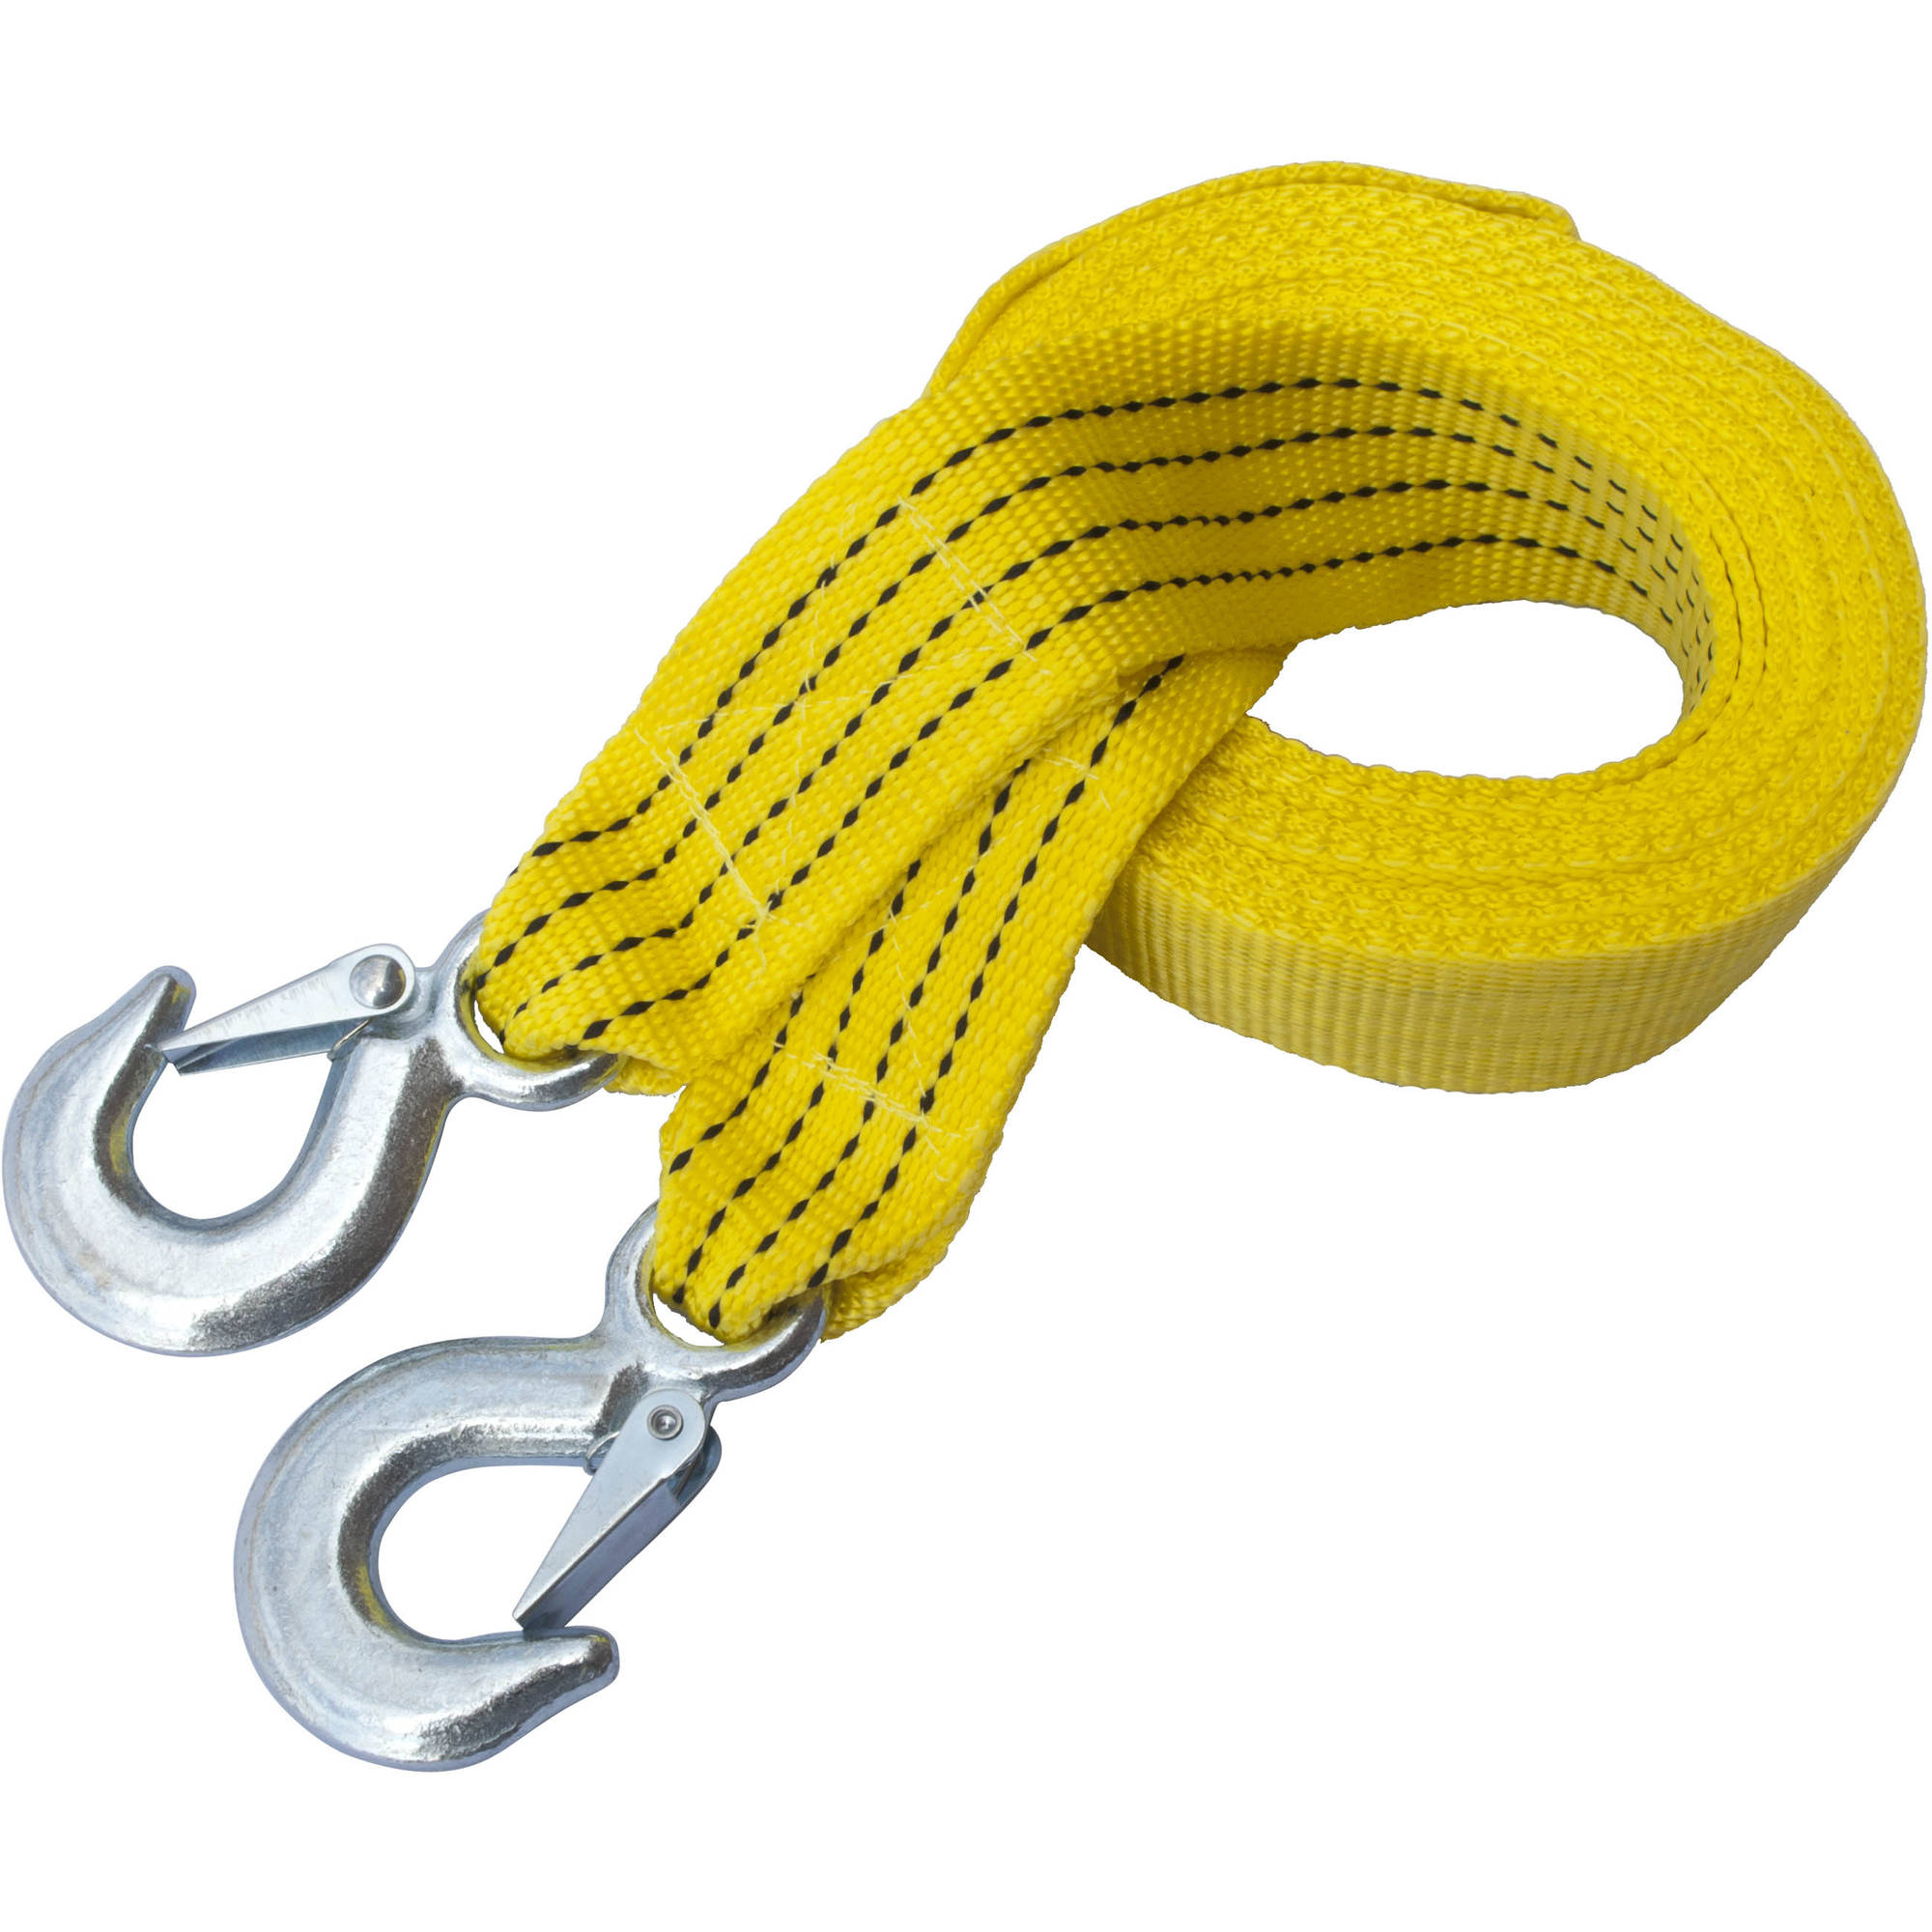 ALEKO TR5T2X13 Heavy-Duty Tow Strap with Hooks, 11,000 lb Capacity, 13' Long, Yellow by ALEKO